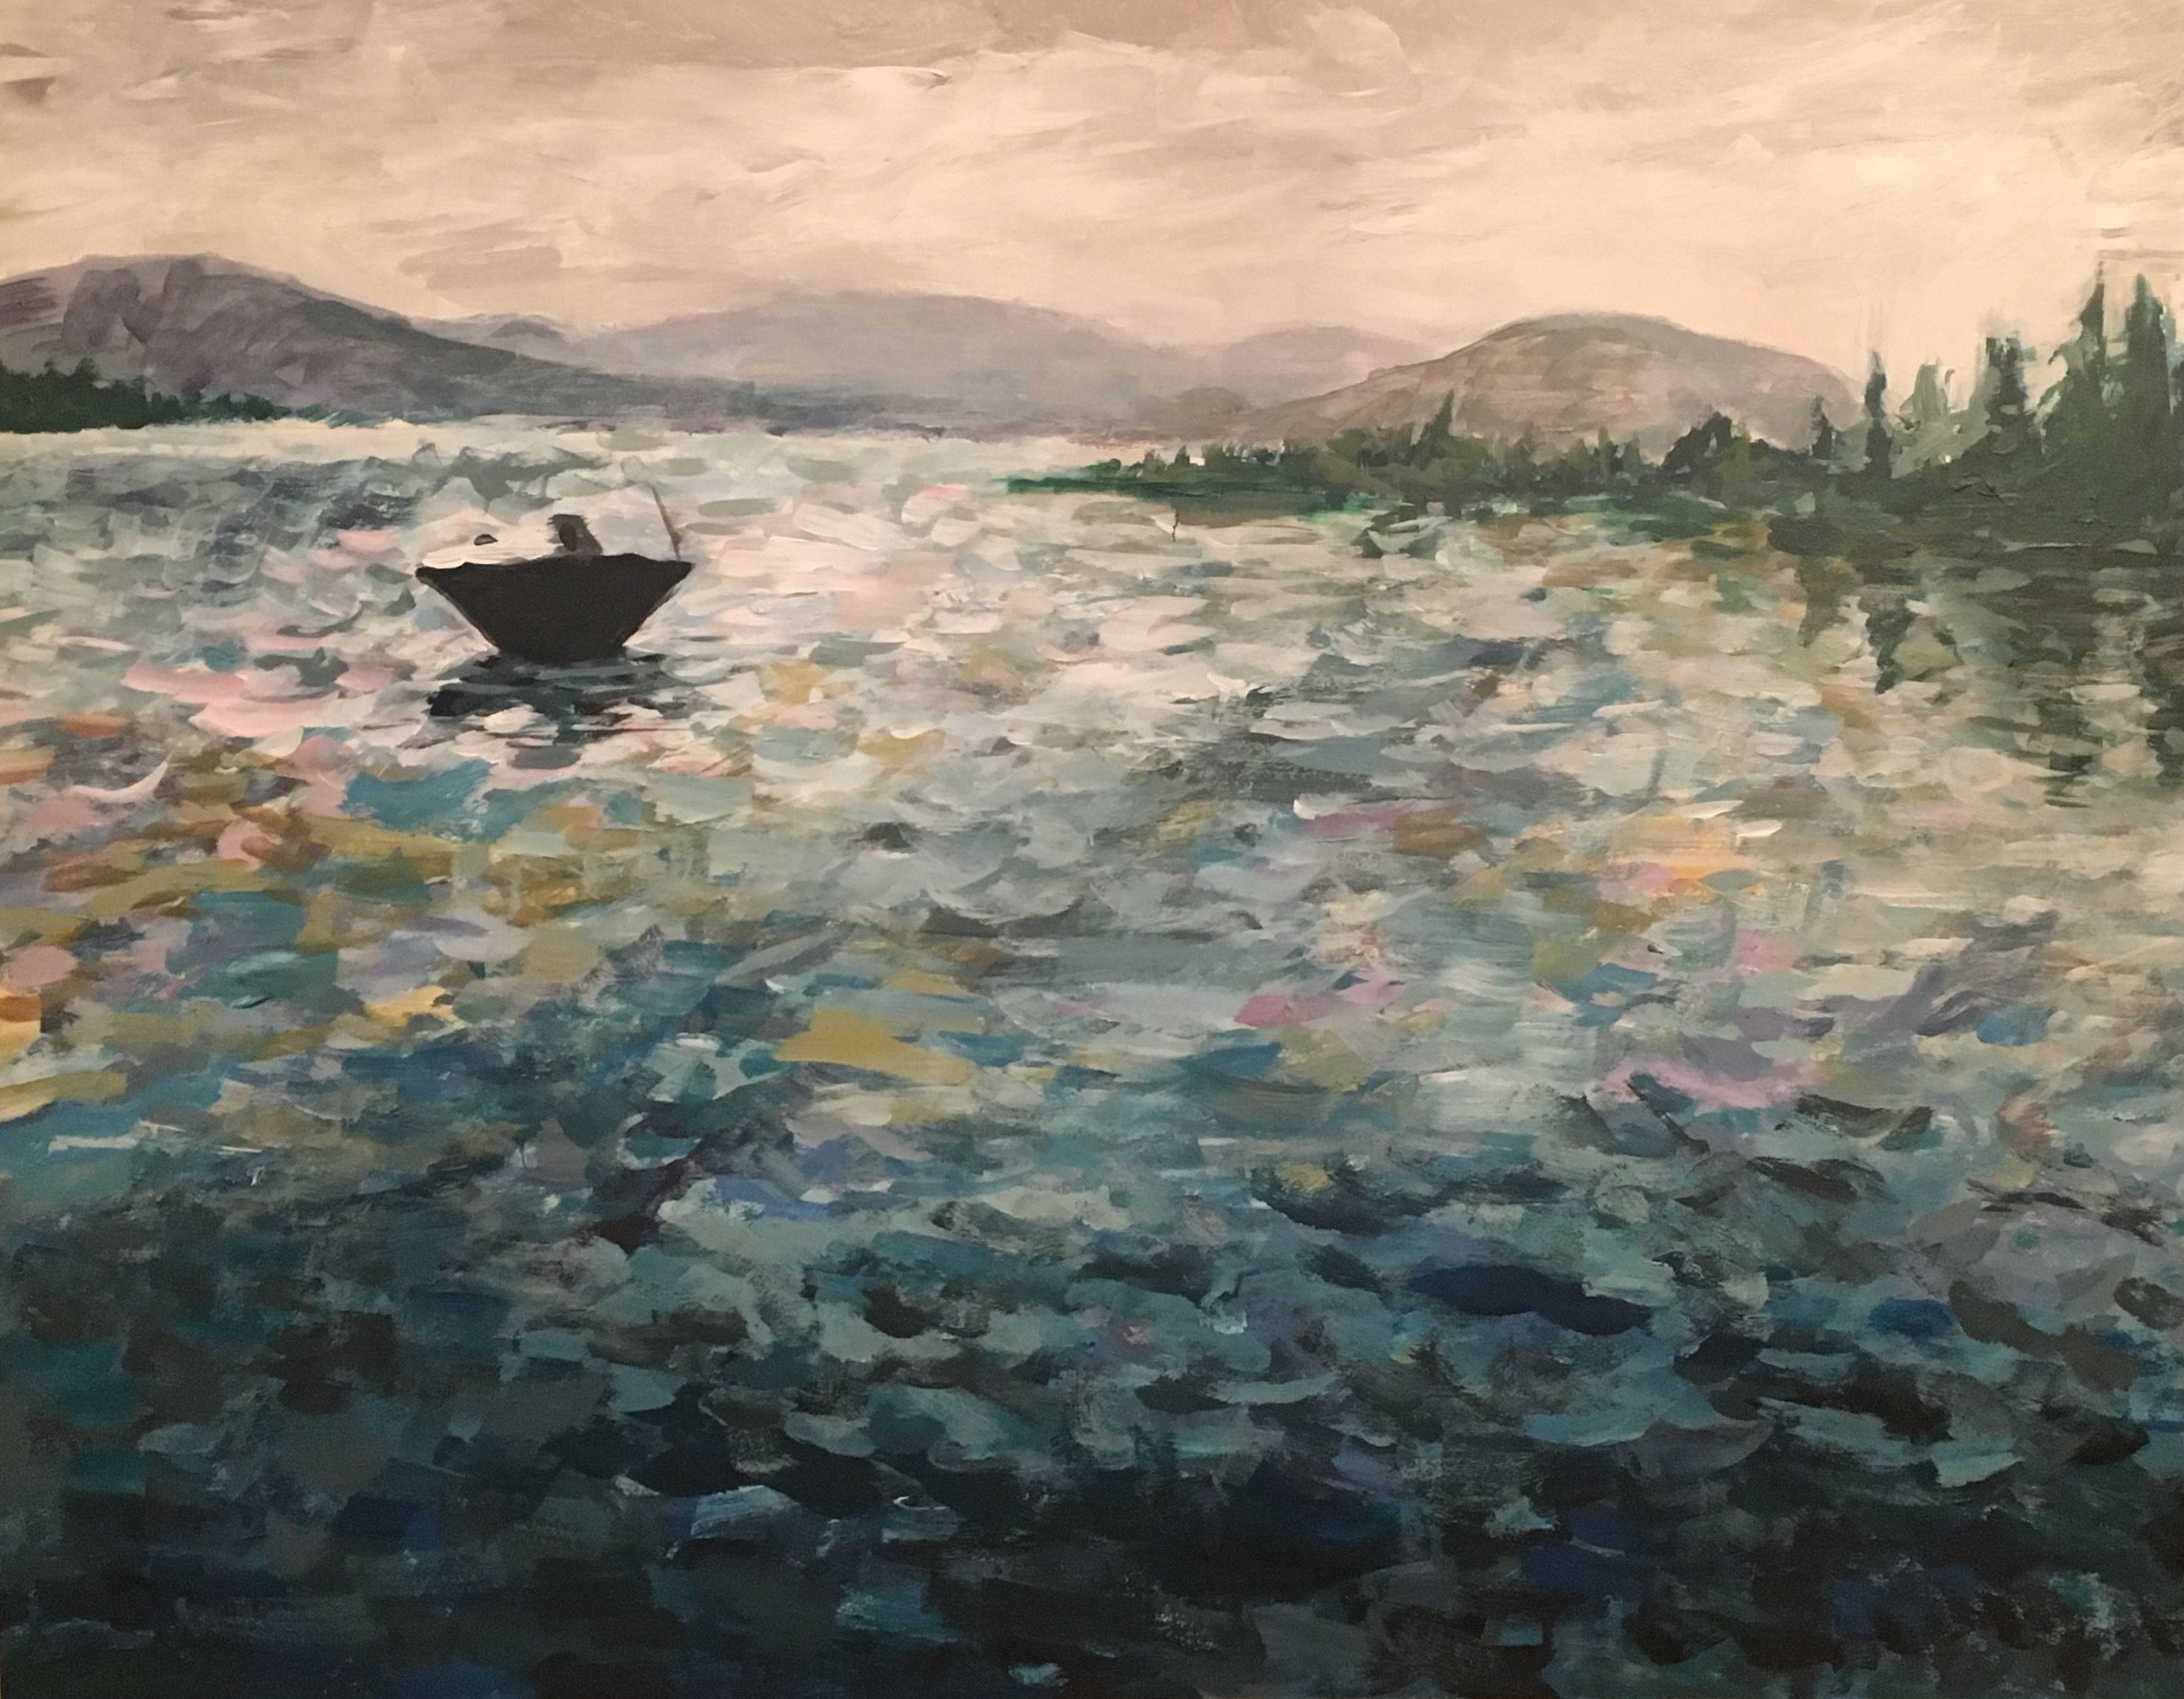 A Moody Impressionistic Landscape Painting Of The Lake District In The English Countryside Definechase Painter Painting Landscape Paintings City Art